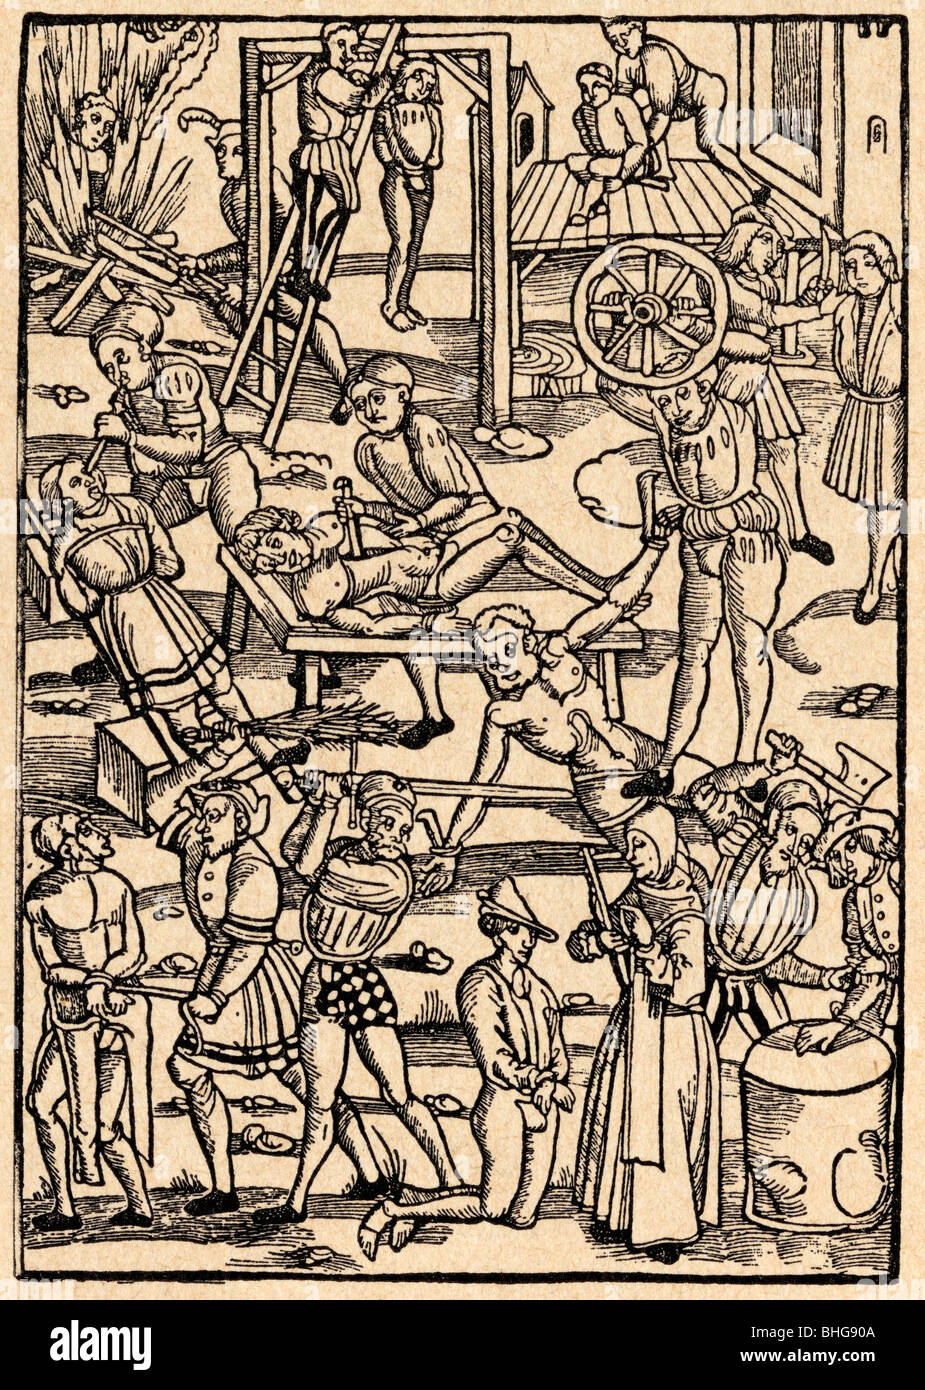 Torture and execution methods in the Middle Ages. - Stock Image